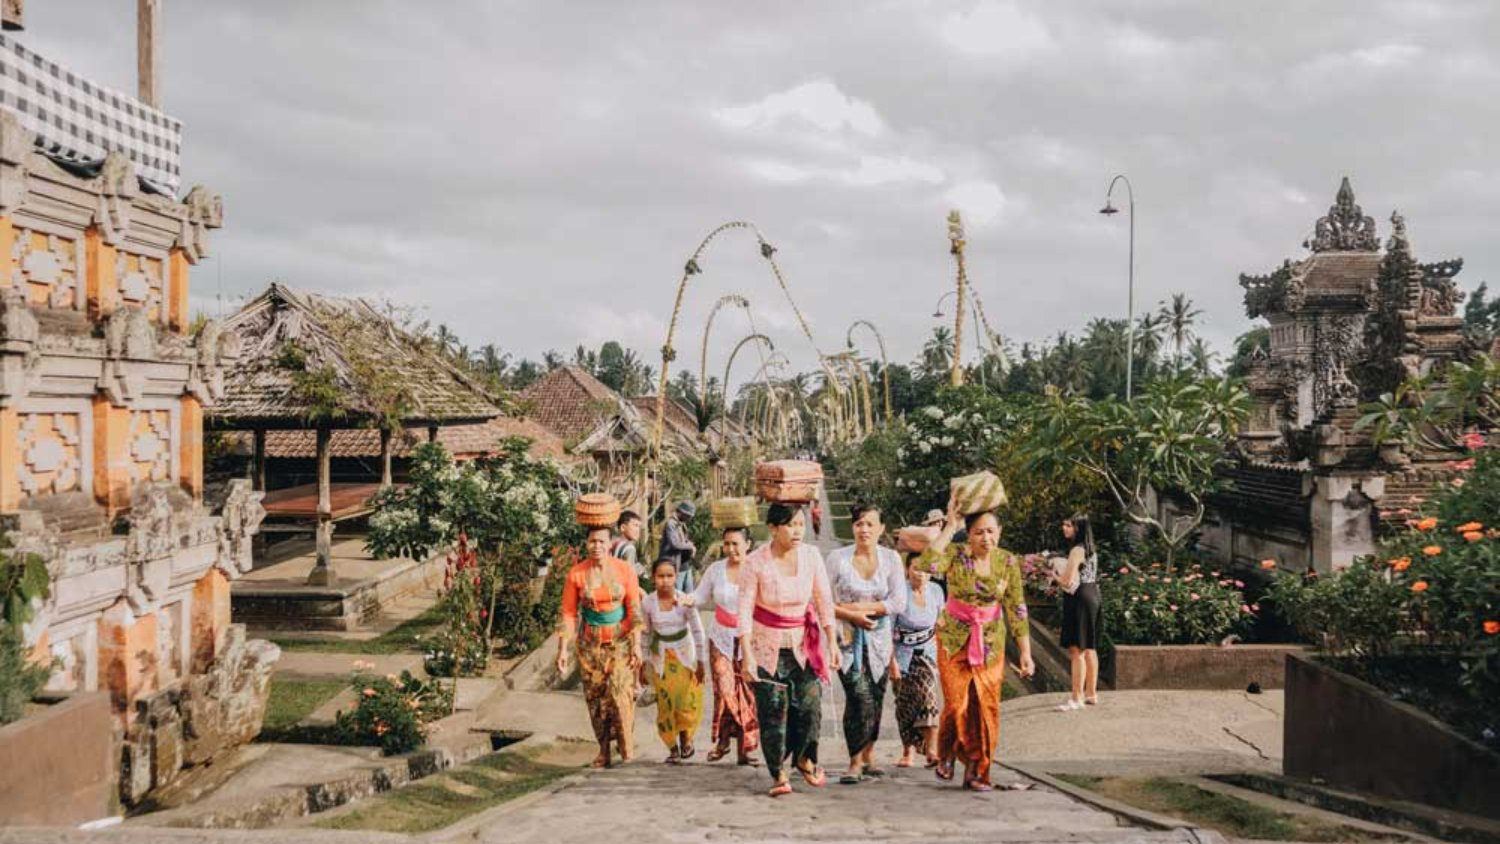 Things You Need to Know About Penjor Bali Meaning